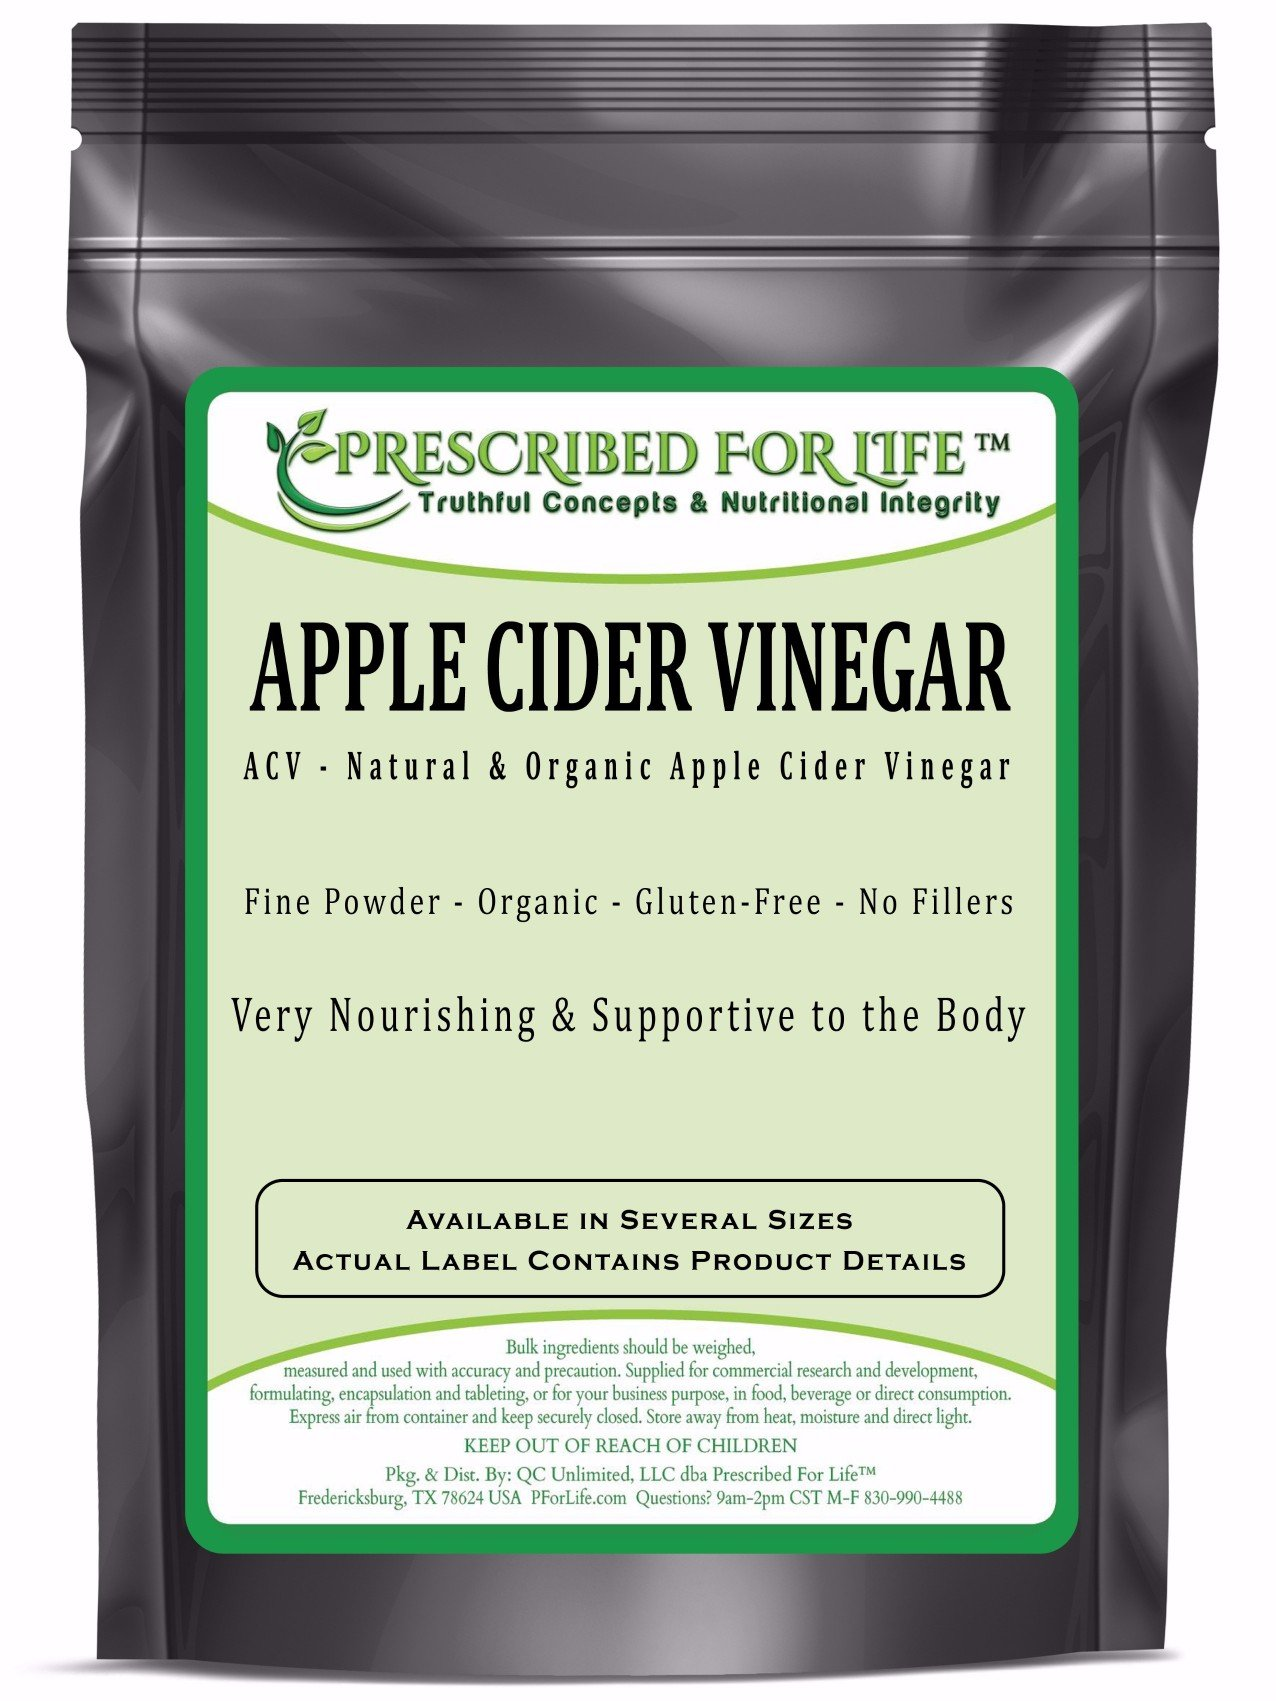 Apple Cider Vinegar - Organic Spray Dried ACV Powder - 5% Acetic Acid (Malus pumila - Mill.), 1 kg by Prescribed For Life